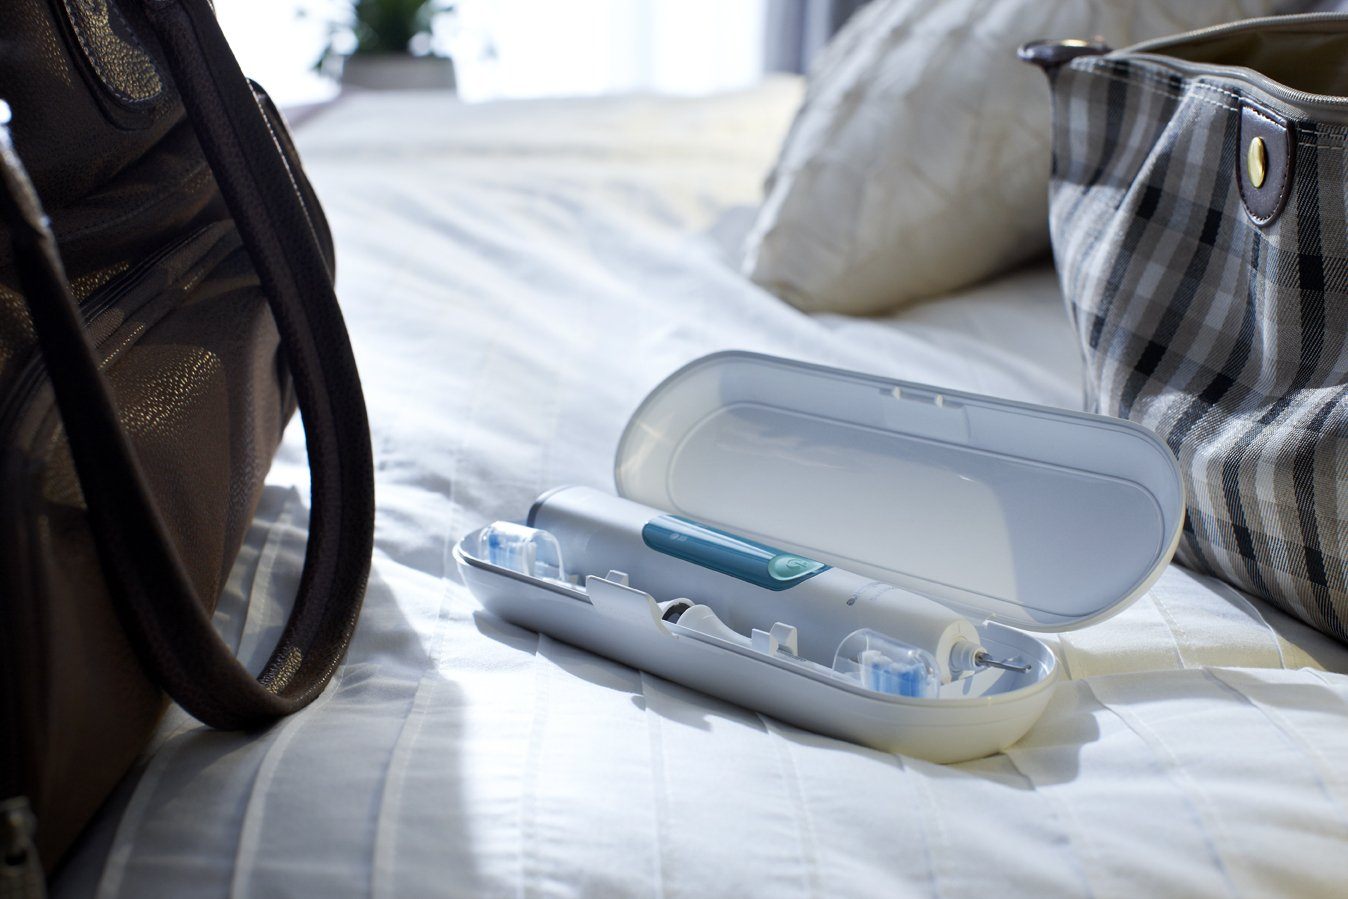 Philips Sonicare 3 Series Gum Health Sonic Electric Rechargeable Toothbrush, HX6610-01 by Philips Sonicare (Image #6)